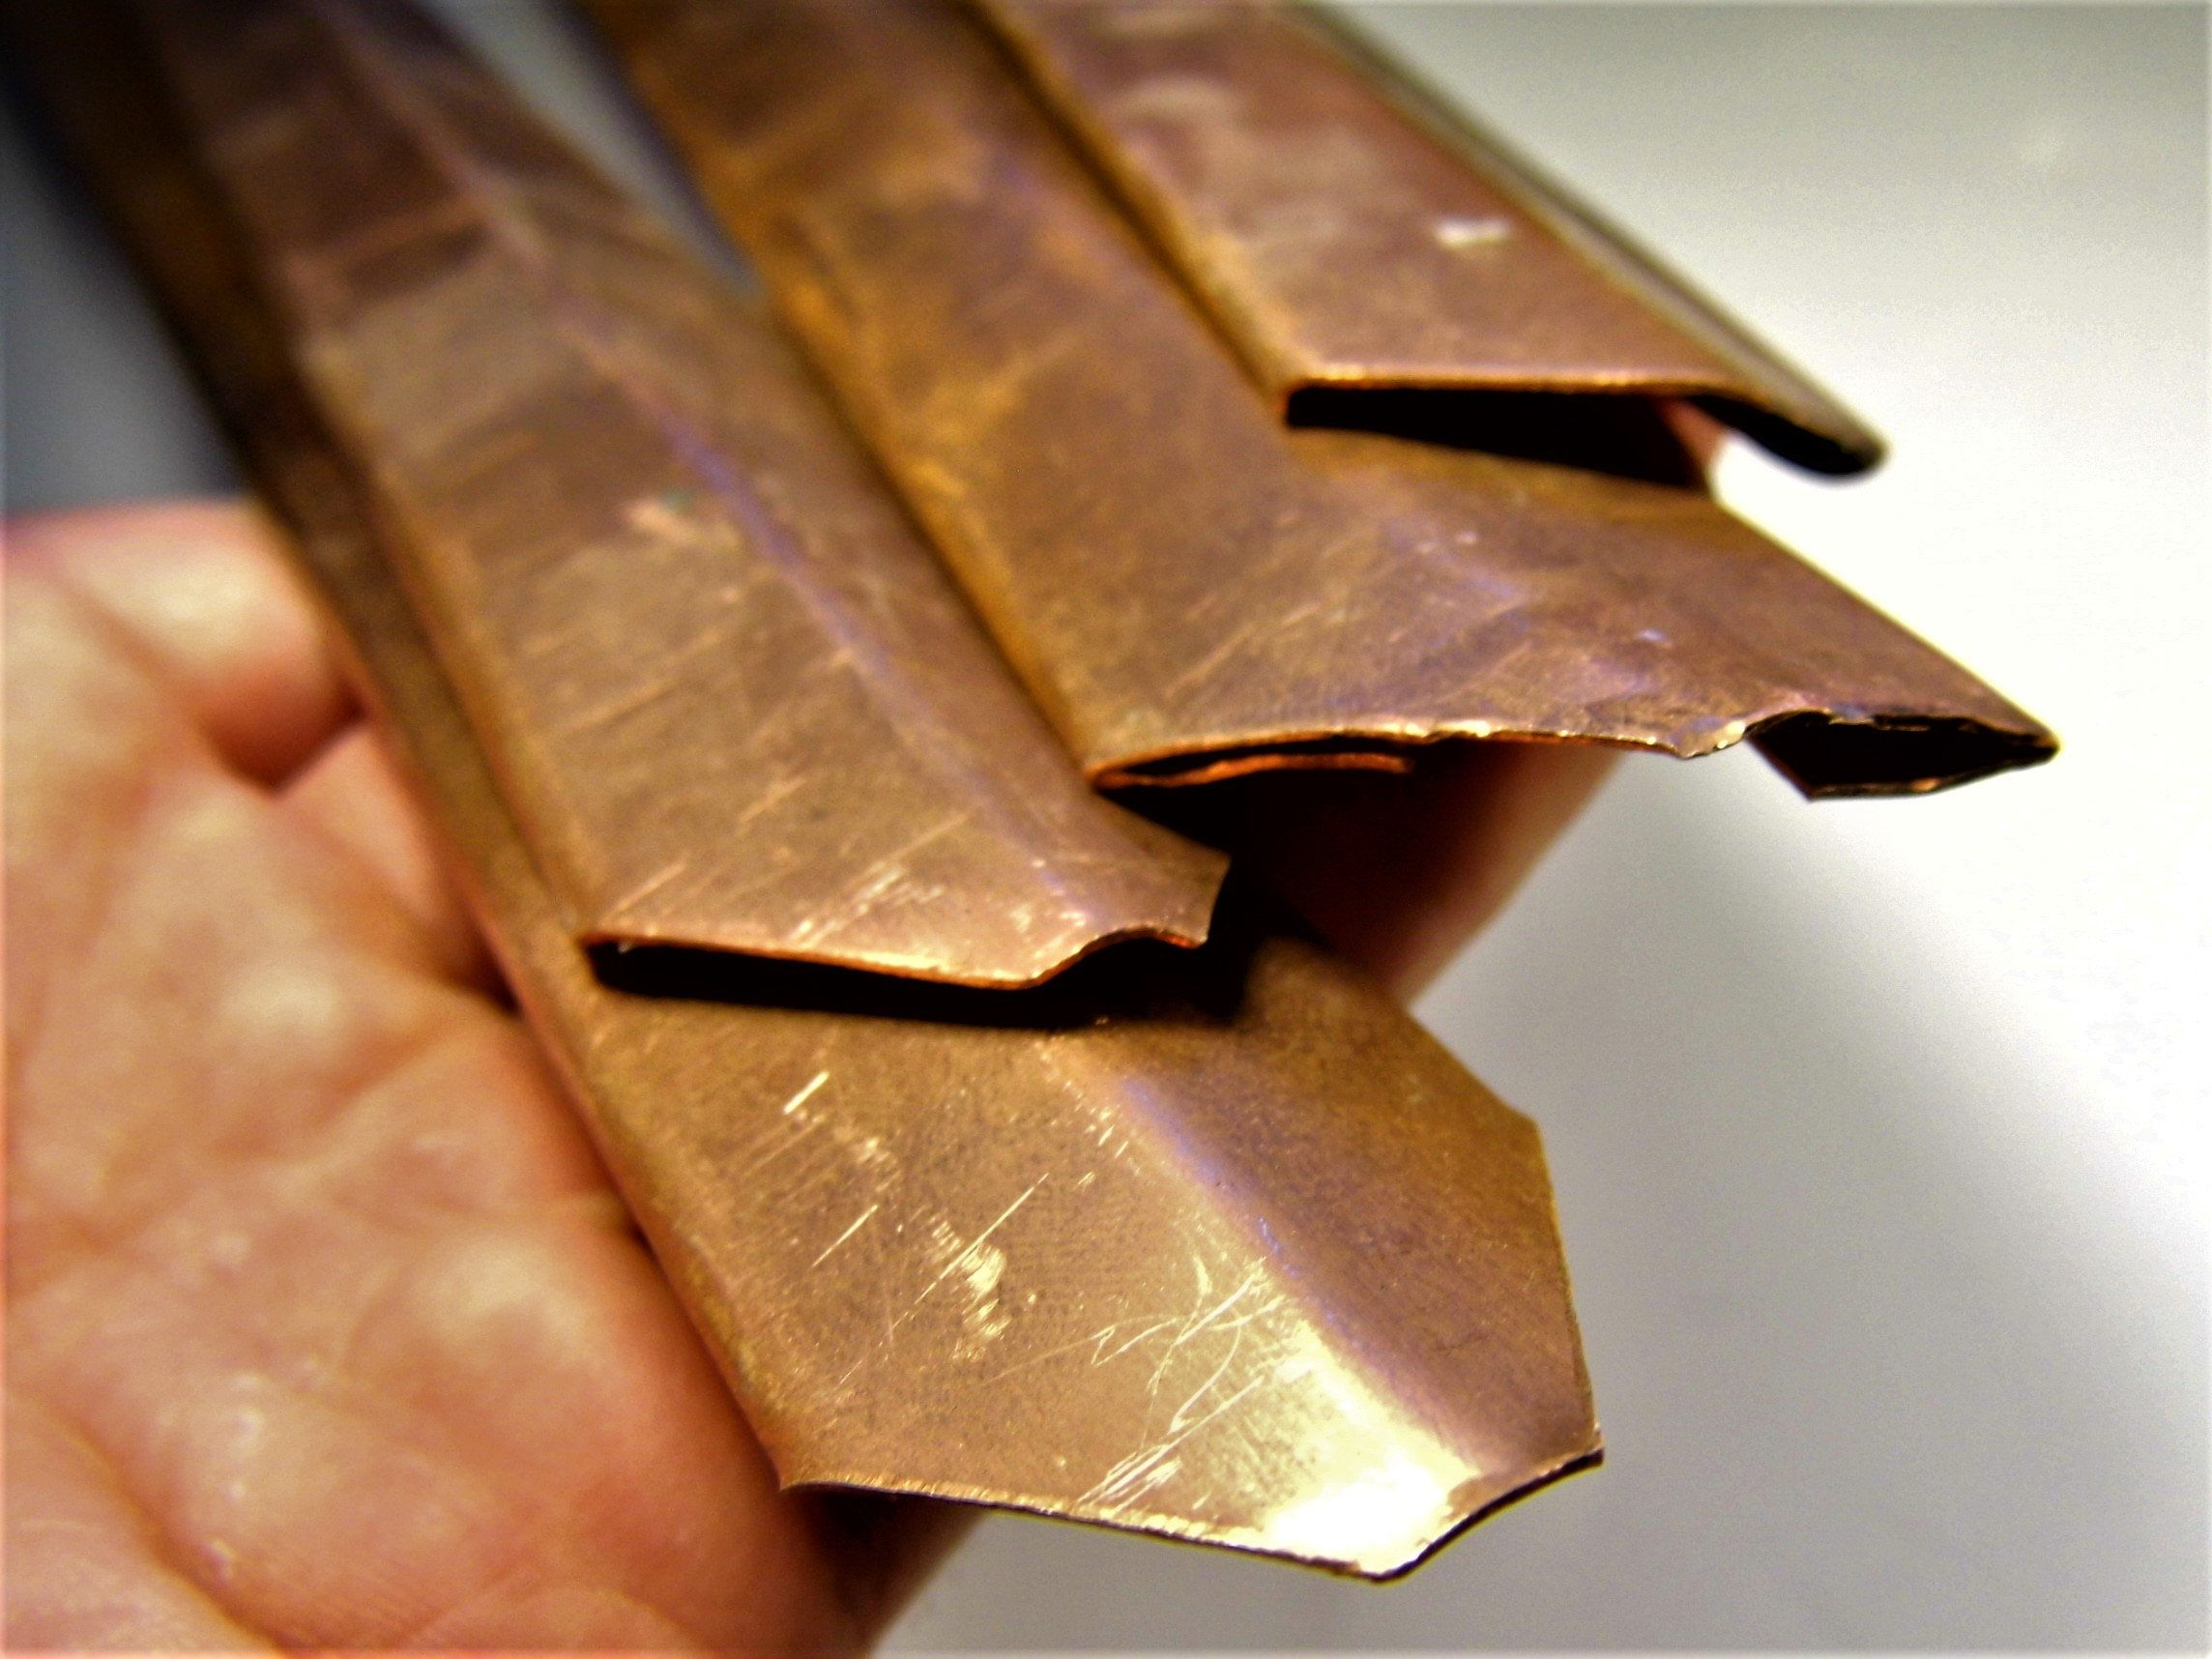 Lot Of 4 Copper Sheet Metal For Crafts Or Jewelry Making 1 Millimeter 410 Grams Craft Supply Blanks Stamping Copper Sheets Metal Working Craft Supplies